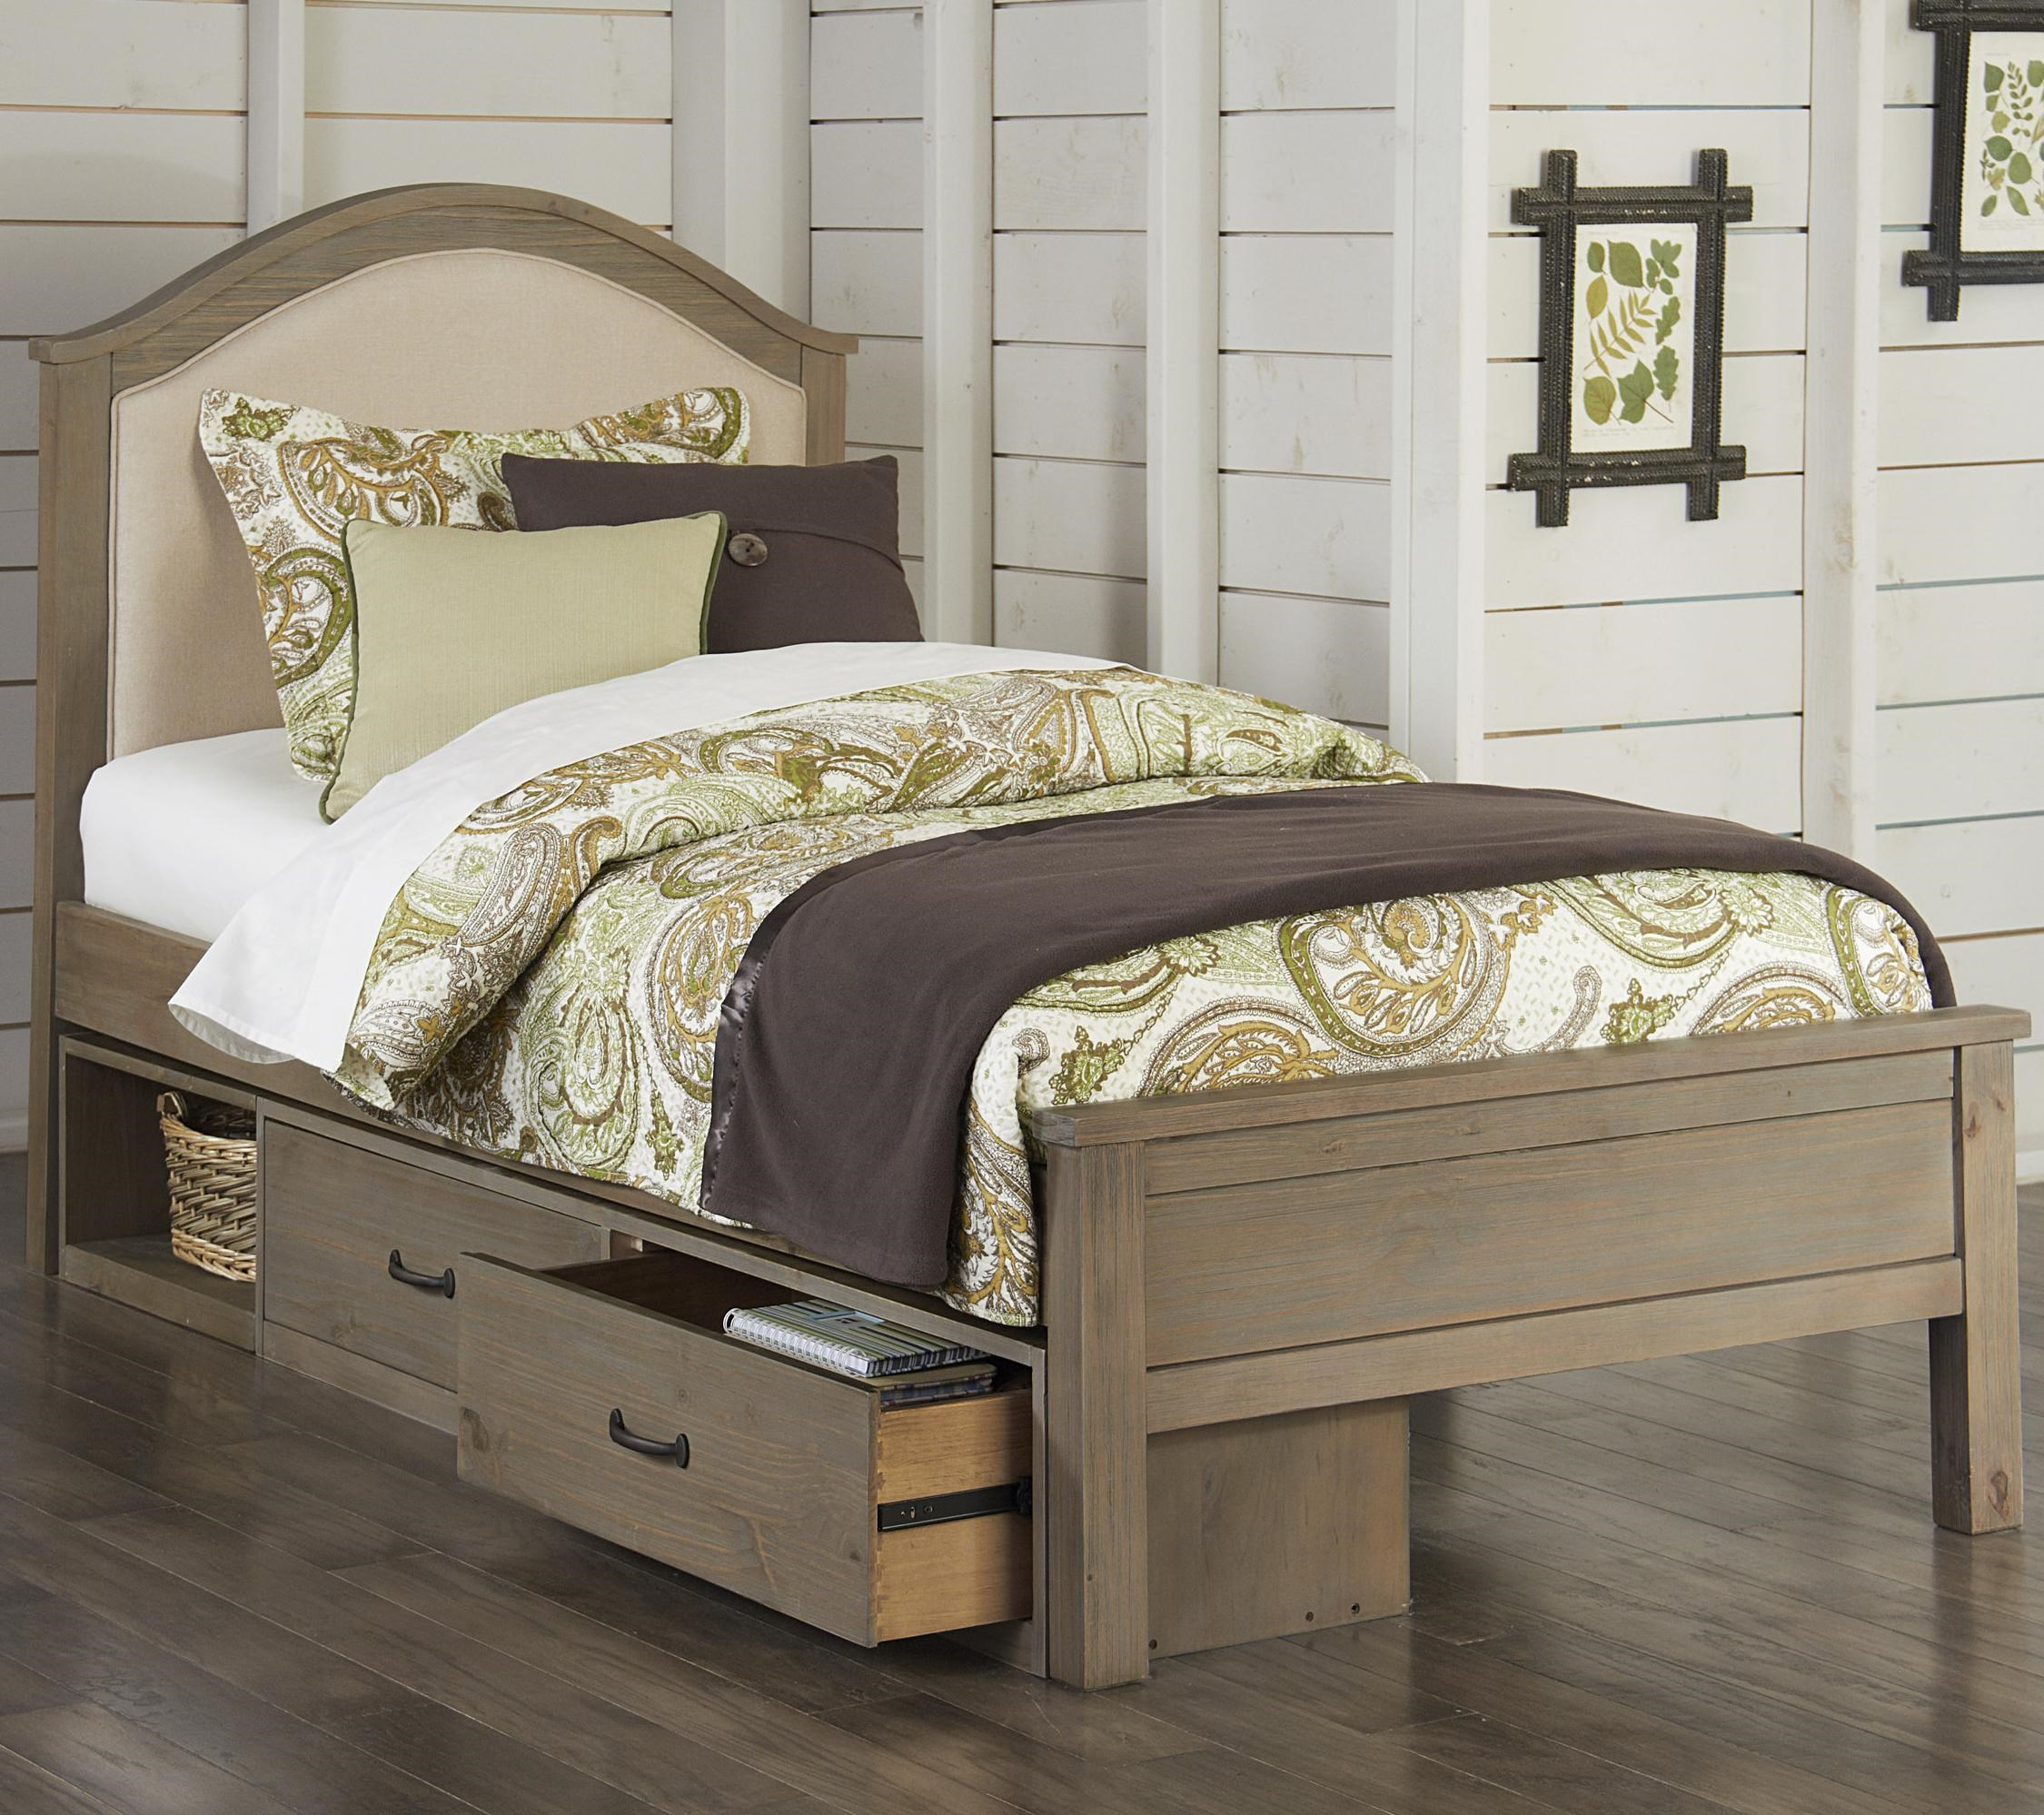 low platform beds with storage. Perfect Platform NE Kids Highlands Twin Bailey Bed With Cream Upholstered Headboard And  Under Storage Throughout Low Platform Beds With